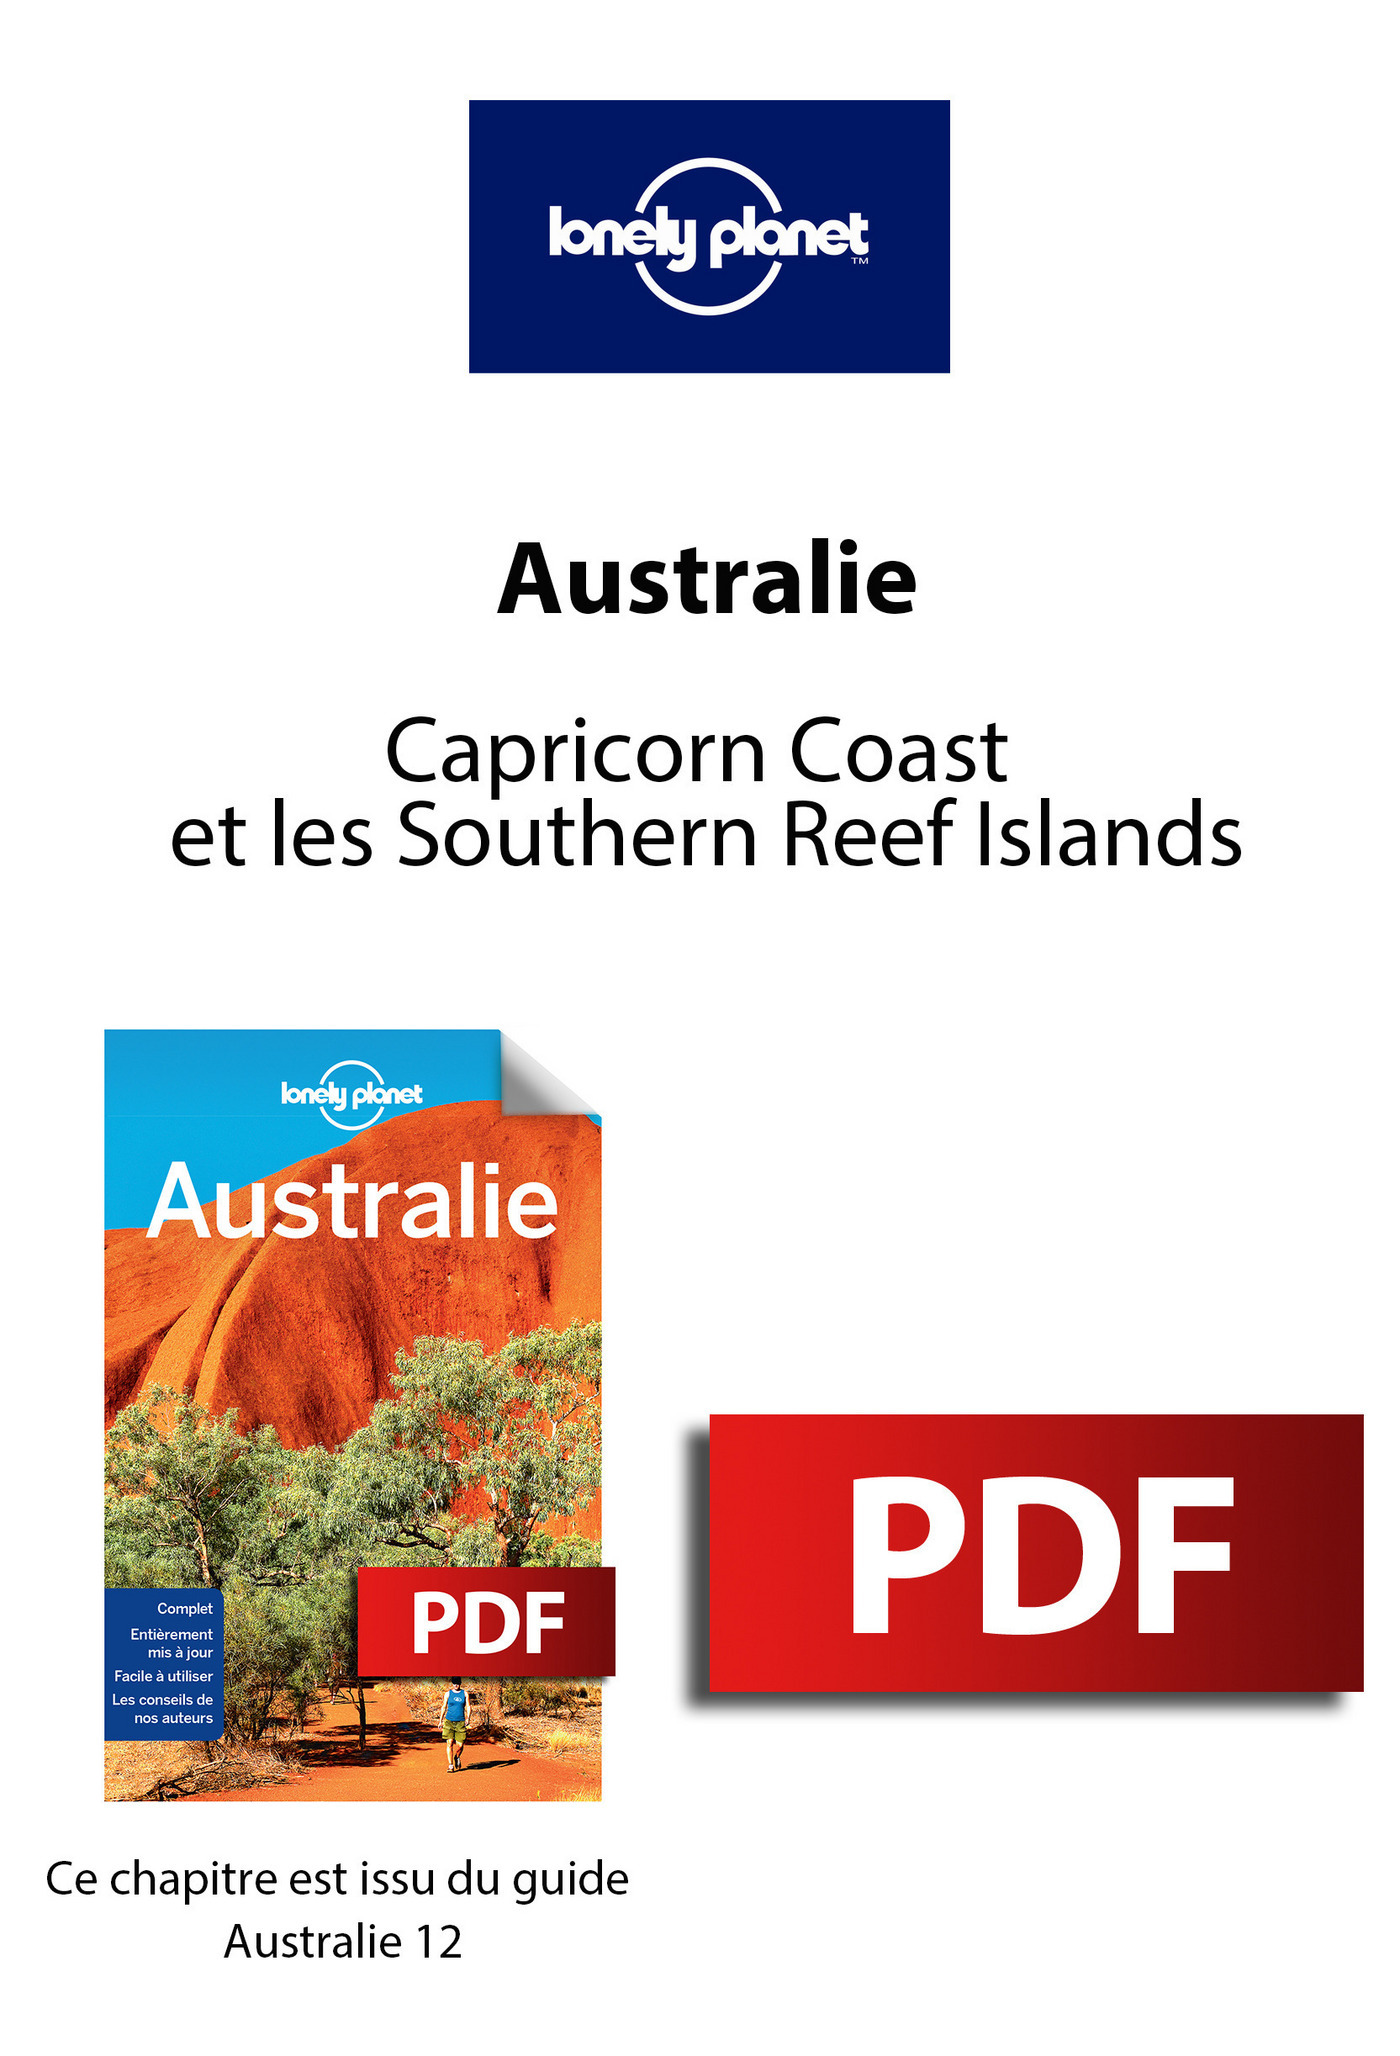 Australie - Capricorn Coast et les Southern Reef Islands